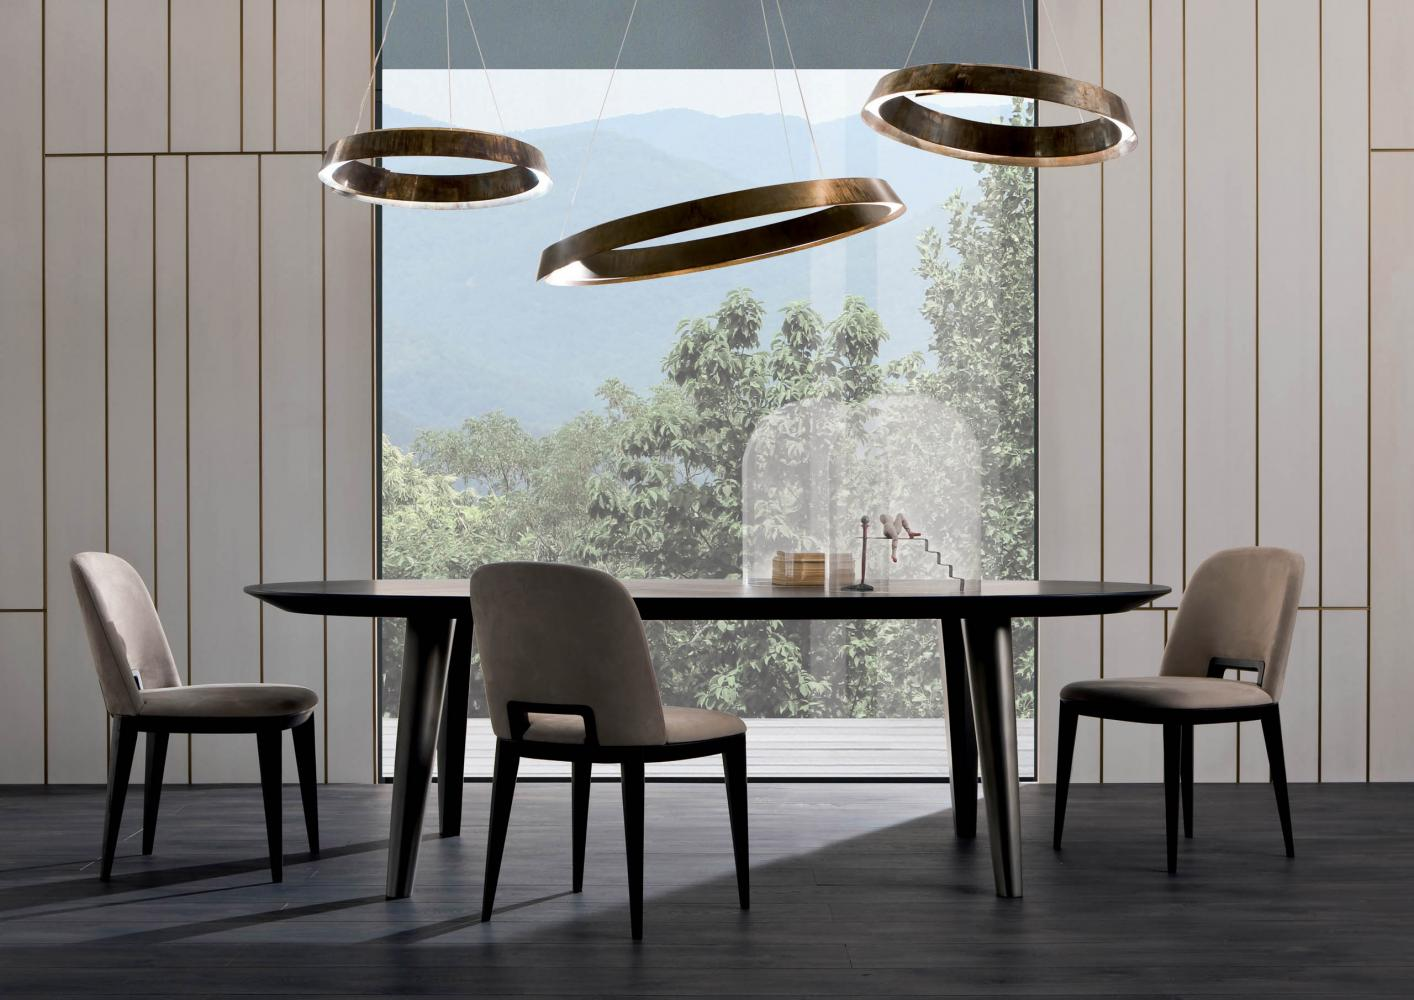 Circular suspended luxury modern lamp in brass